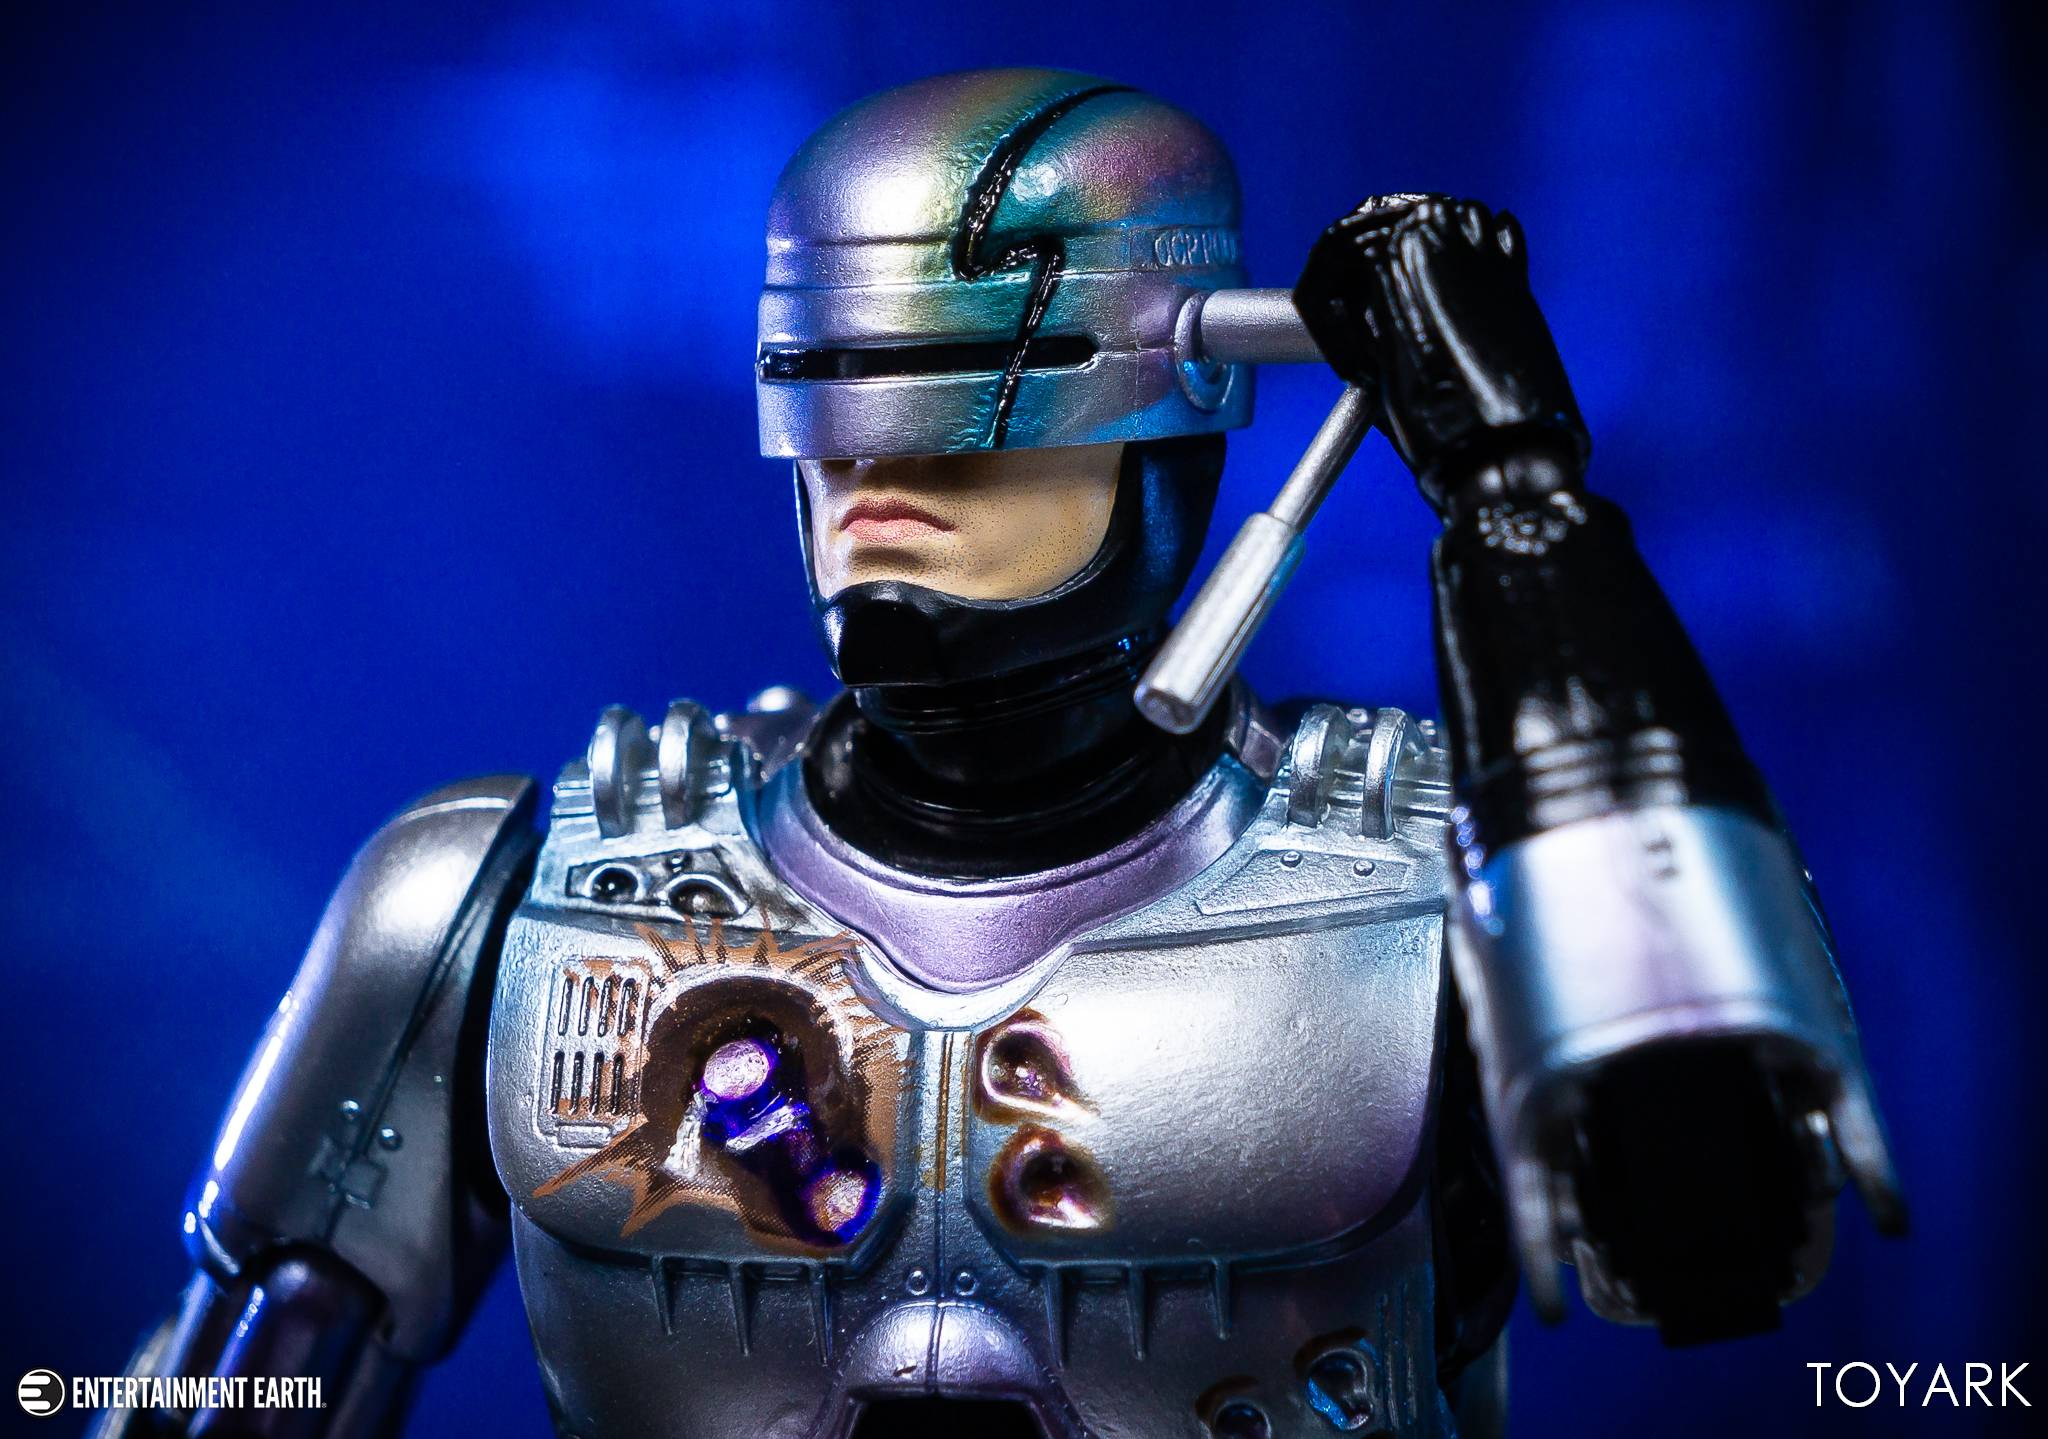 https://news.toyark.com/wp-content/uploads/sites/4/2019/05/MAFEX-Robocop-2-Gallery-022.jpg